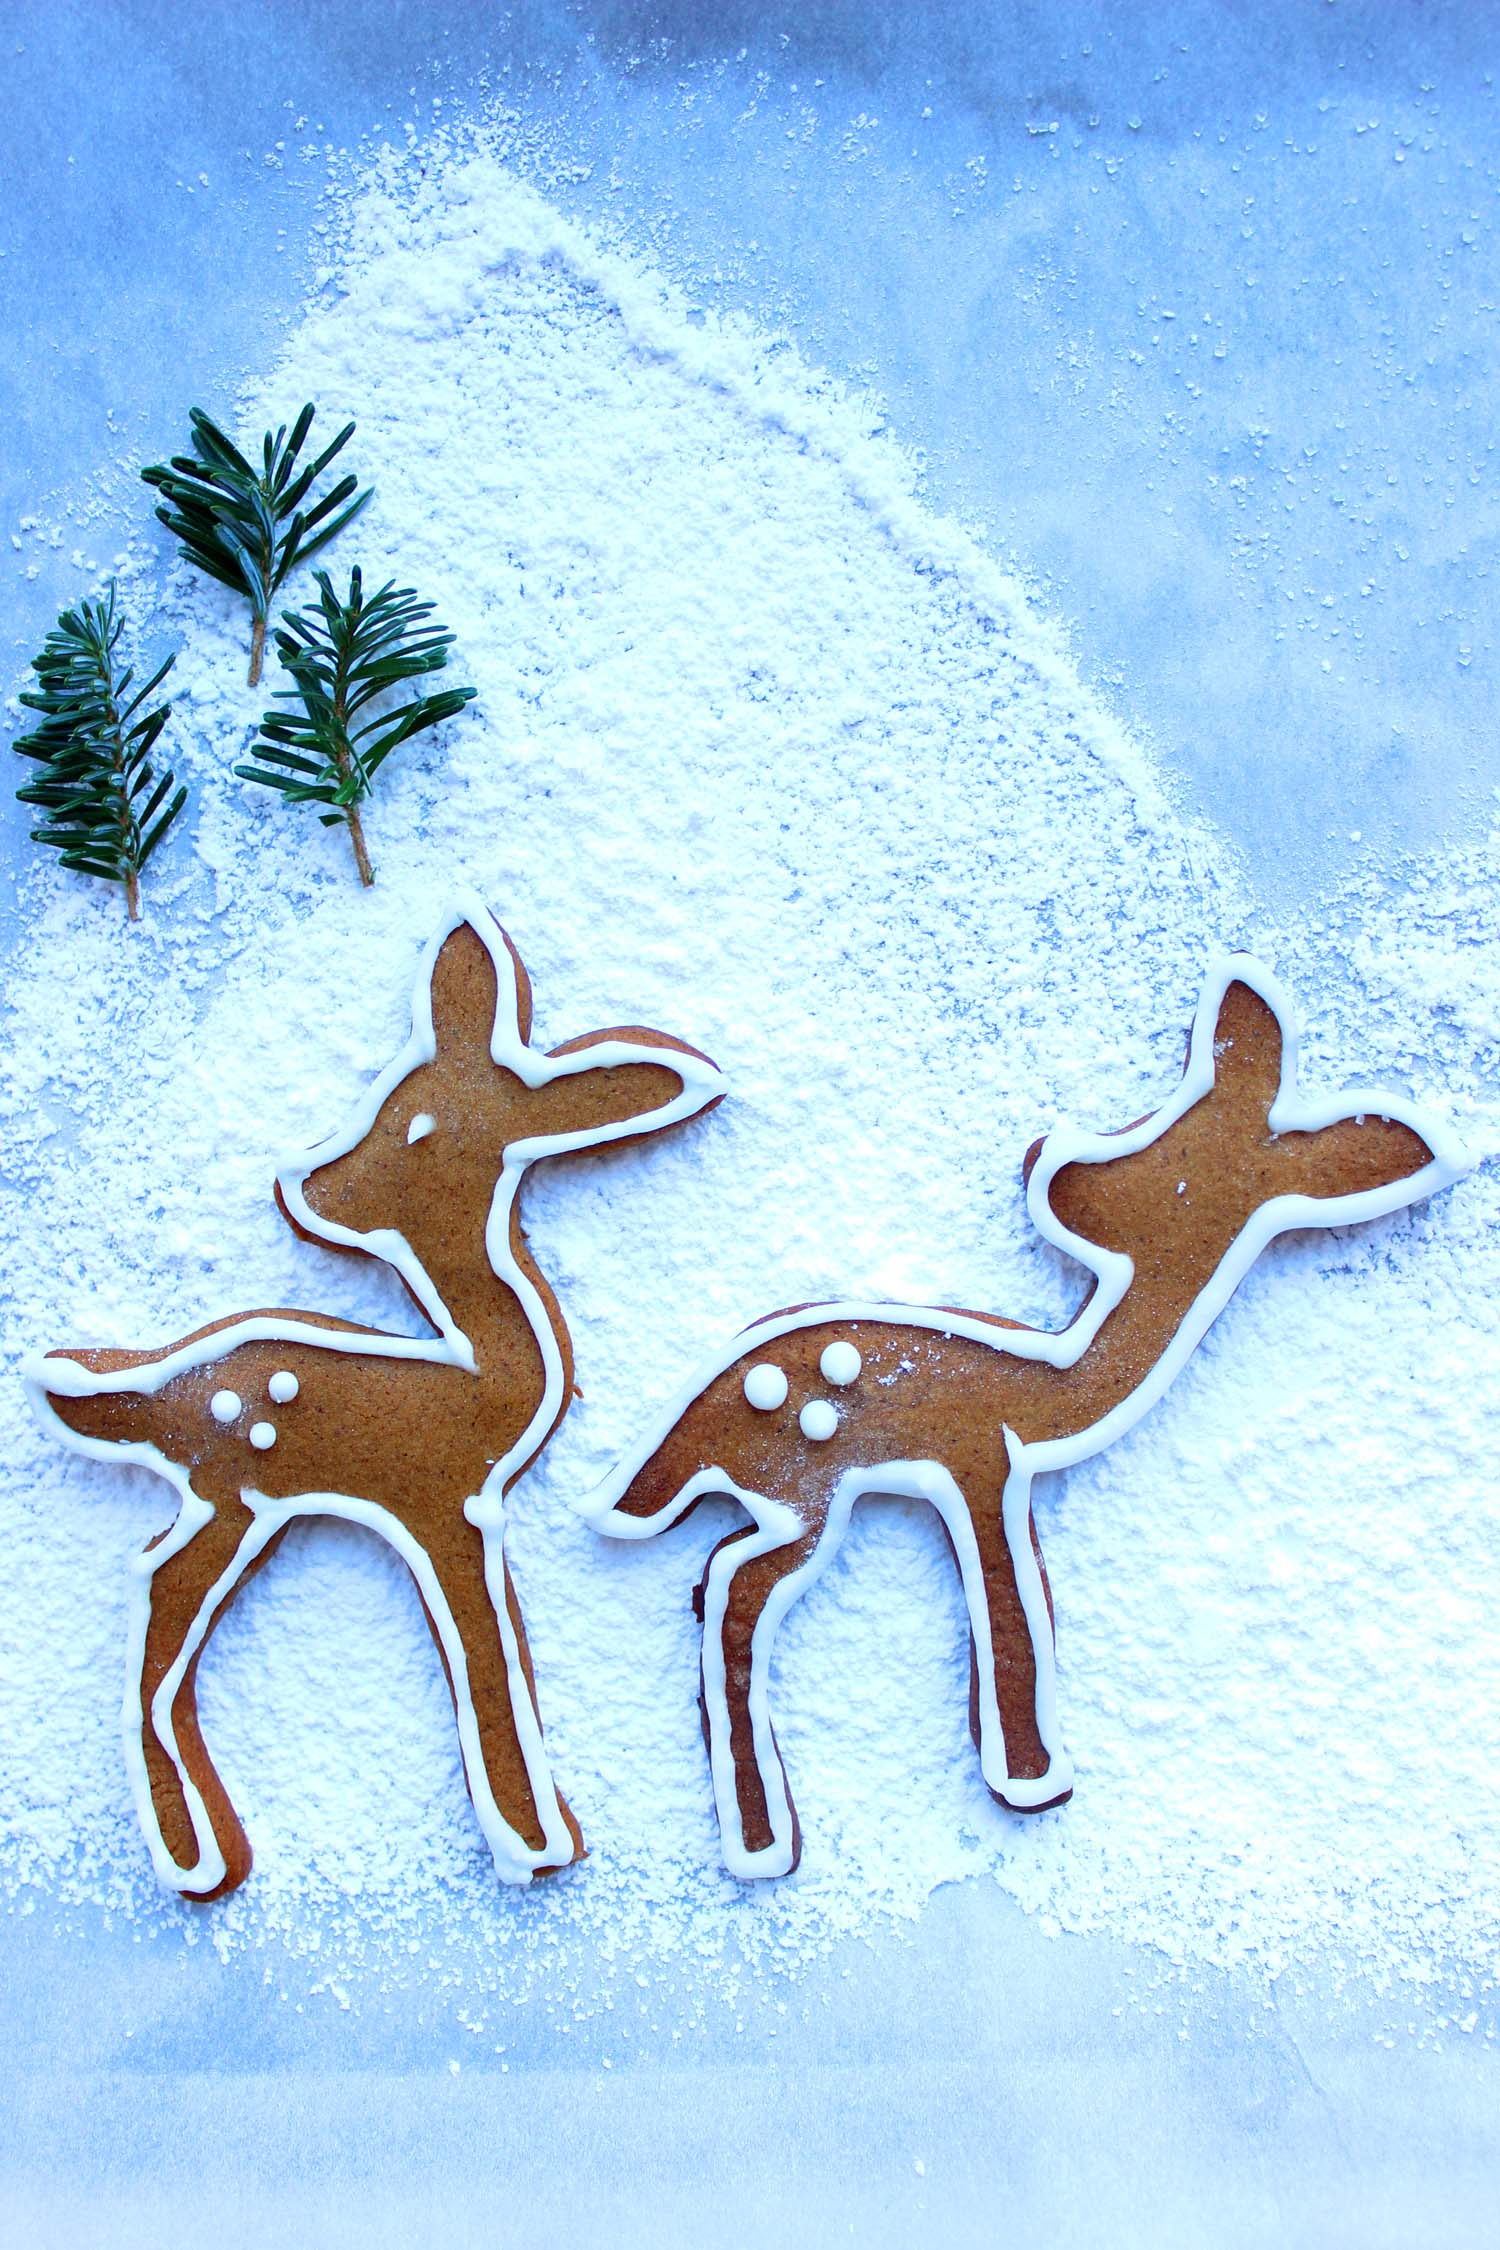 Woodland Gingerbread Cookies   | Image:   Laura Messersmith